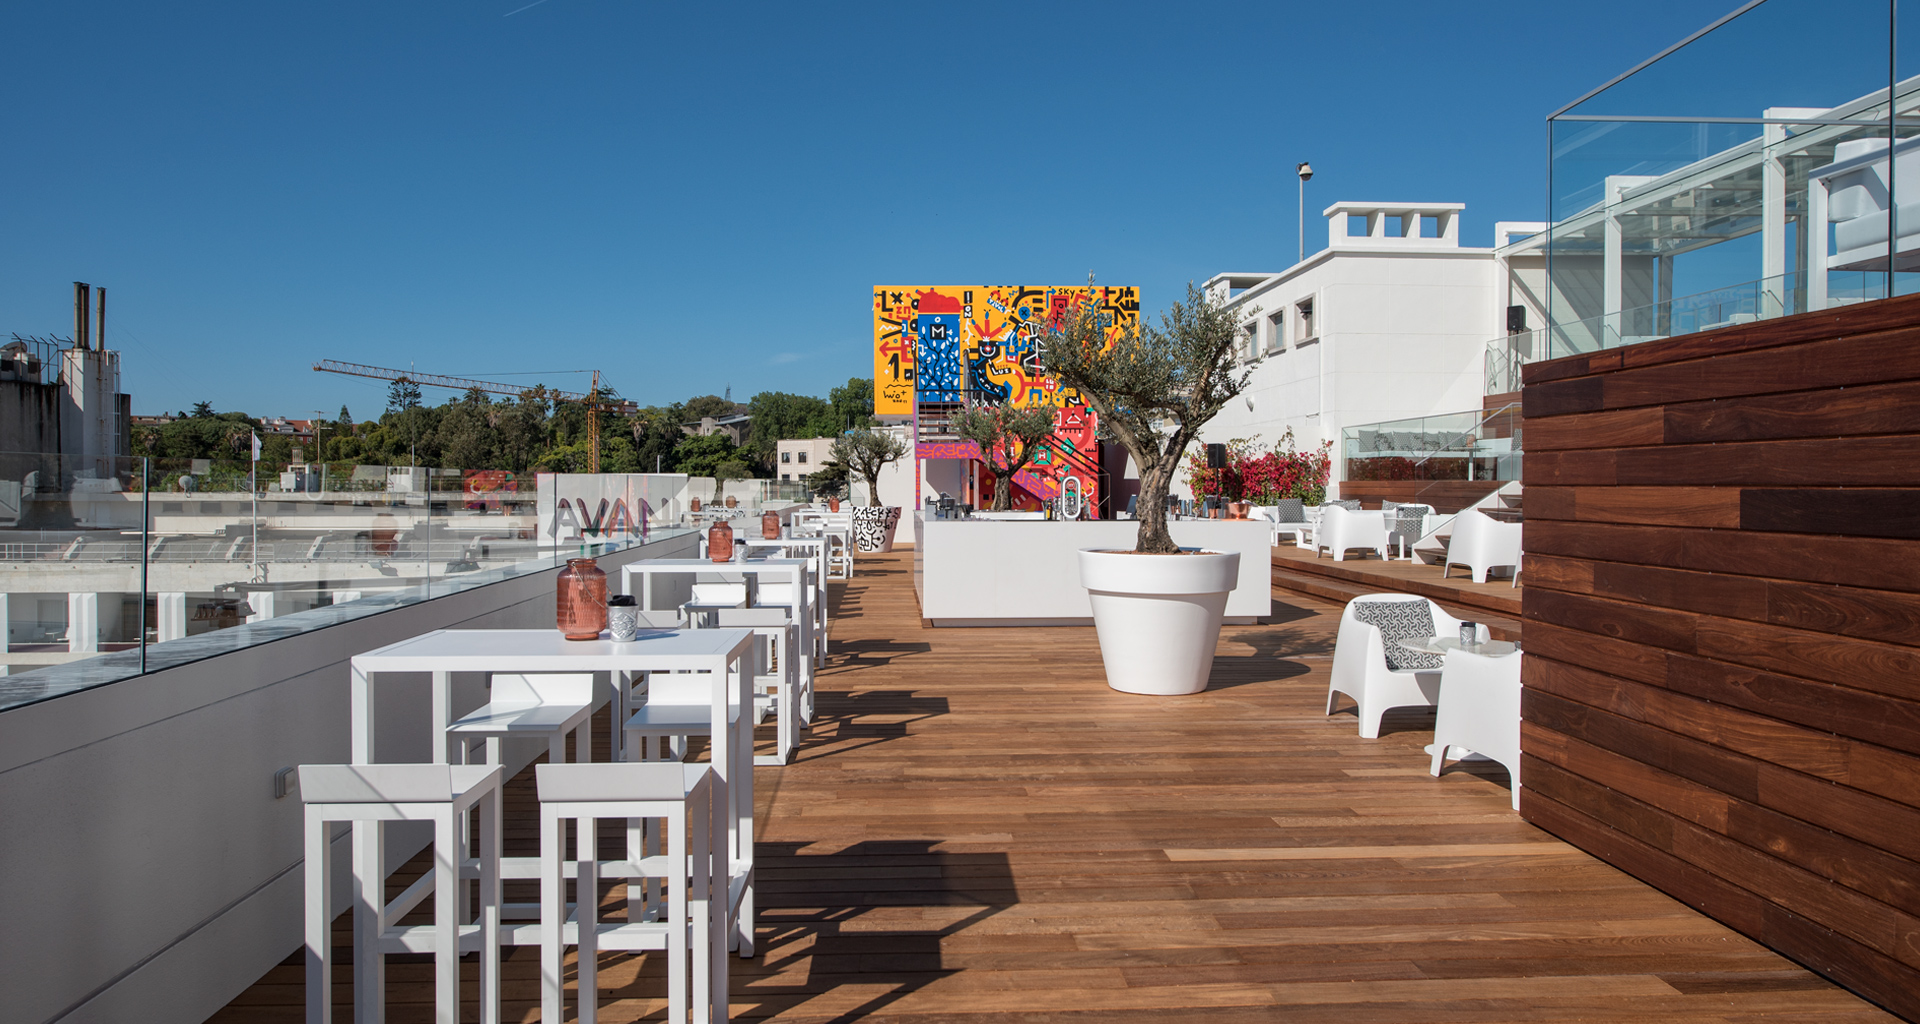 The Best Rooftop Bars in Portugal best rooftop bars in portugal The Best Rooftop Bars in Portugal Sky bar Hotel Tivoli 2